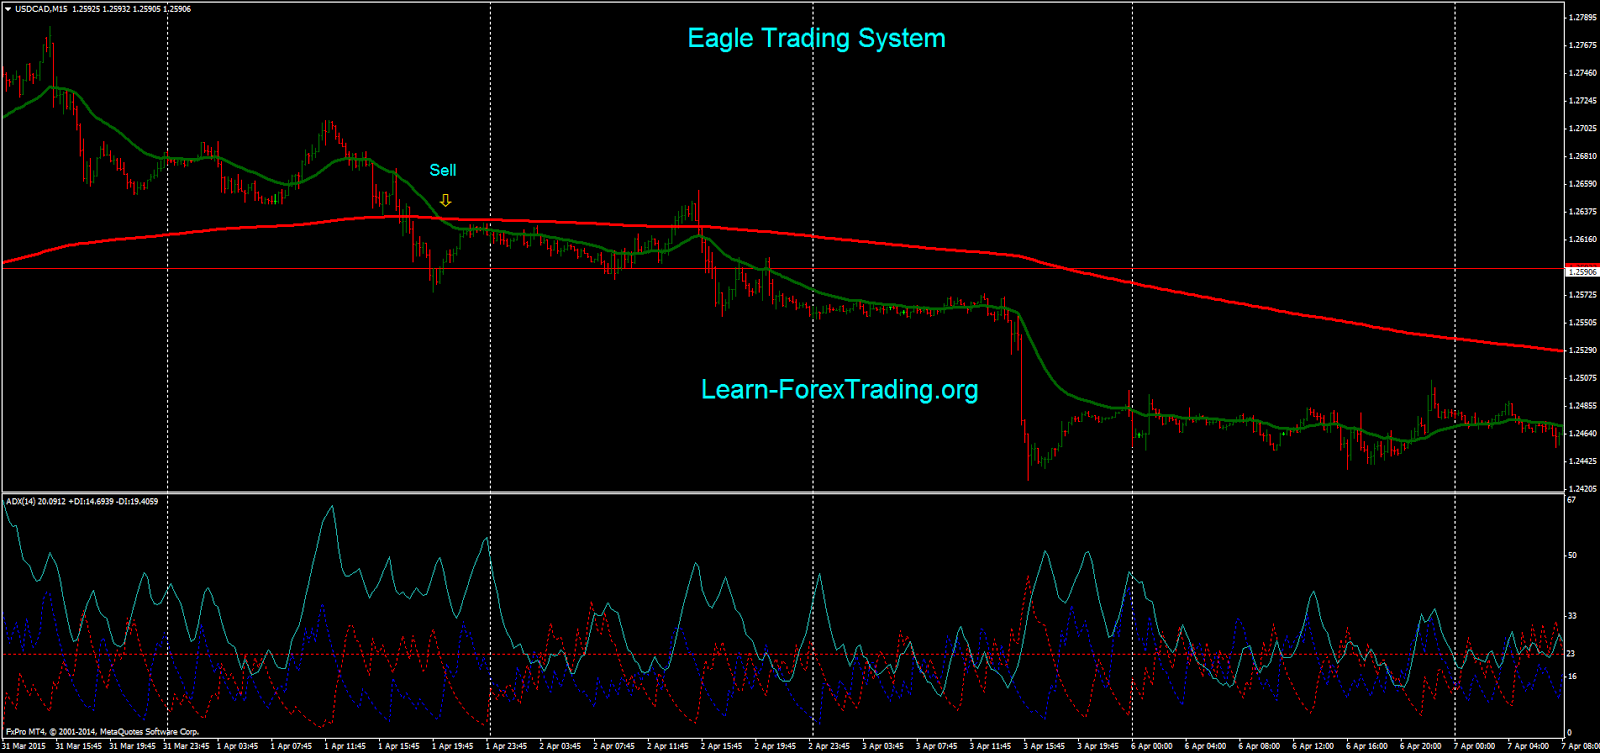 Eagle Trading System